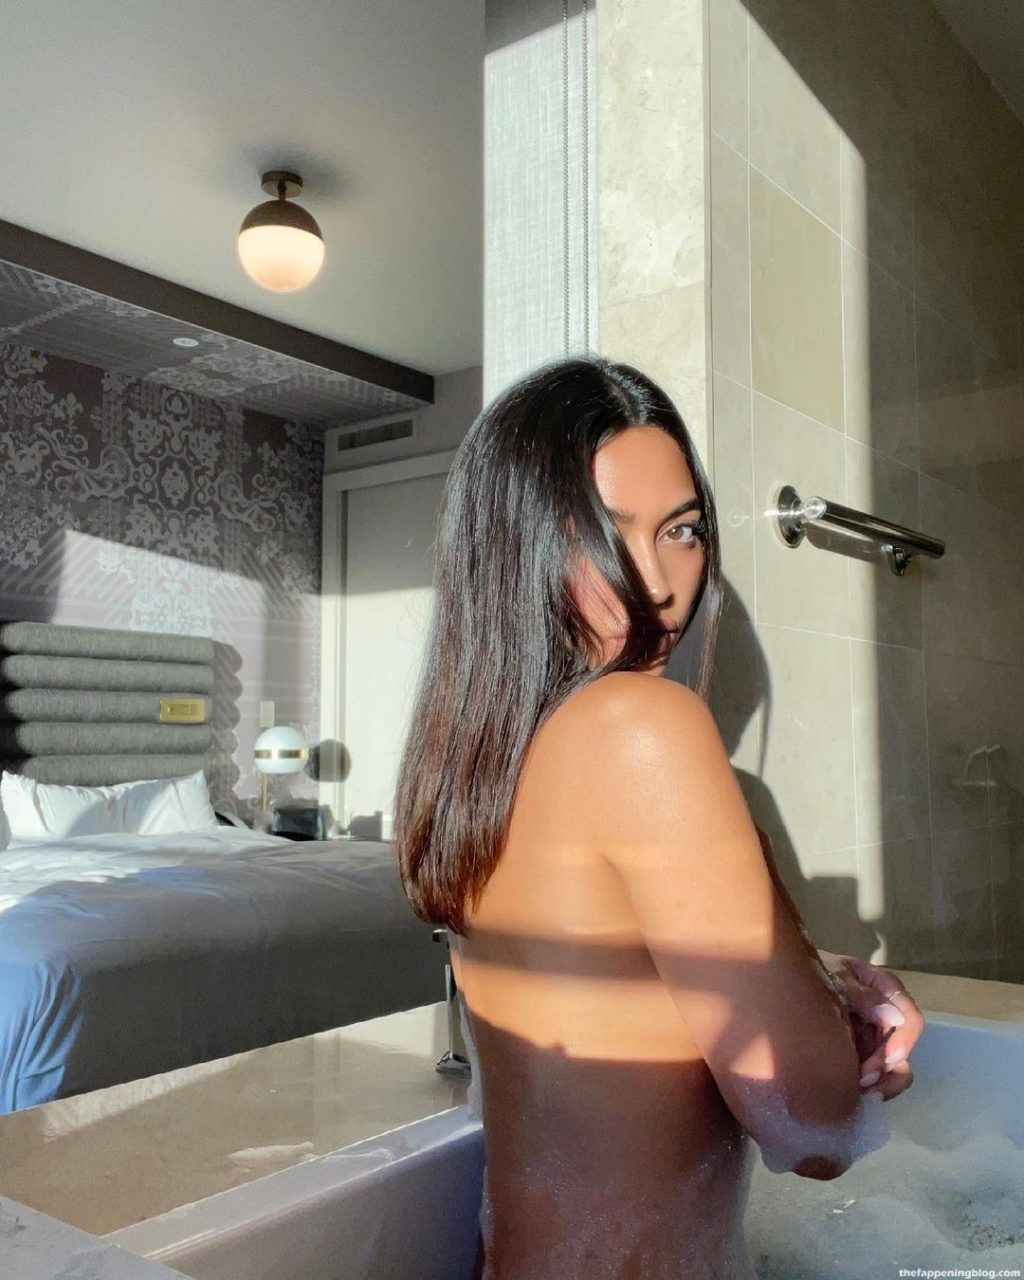 Ambra Gutierrez Shows Off Her Wet Naked Body (11 Photos + Video)